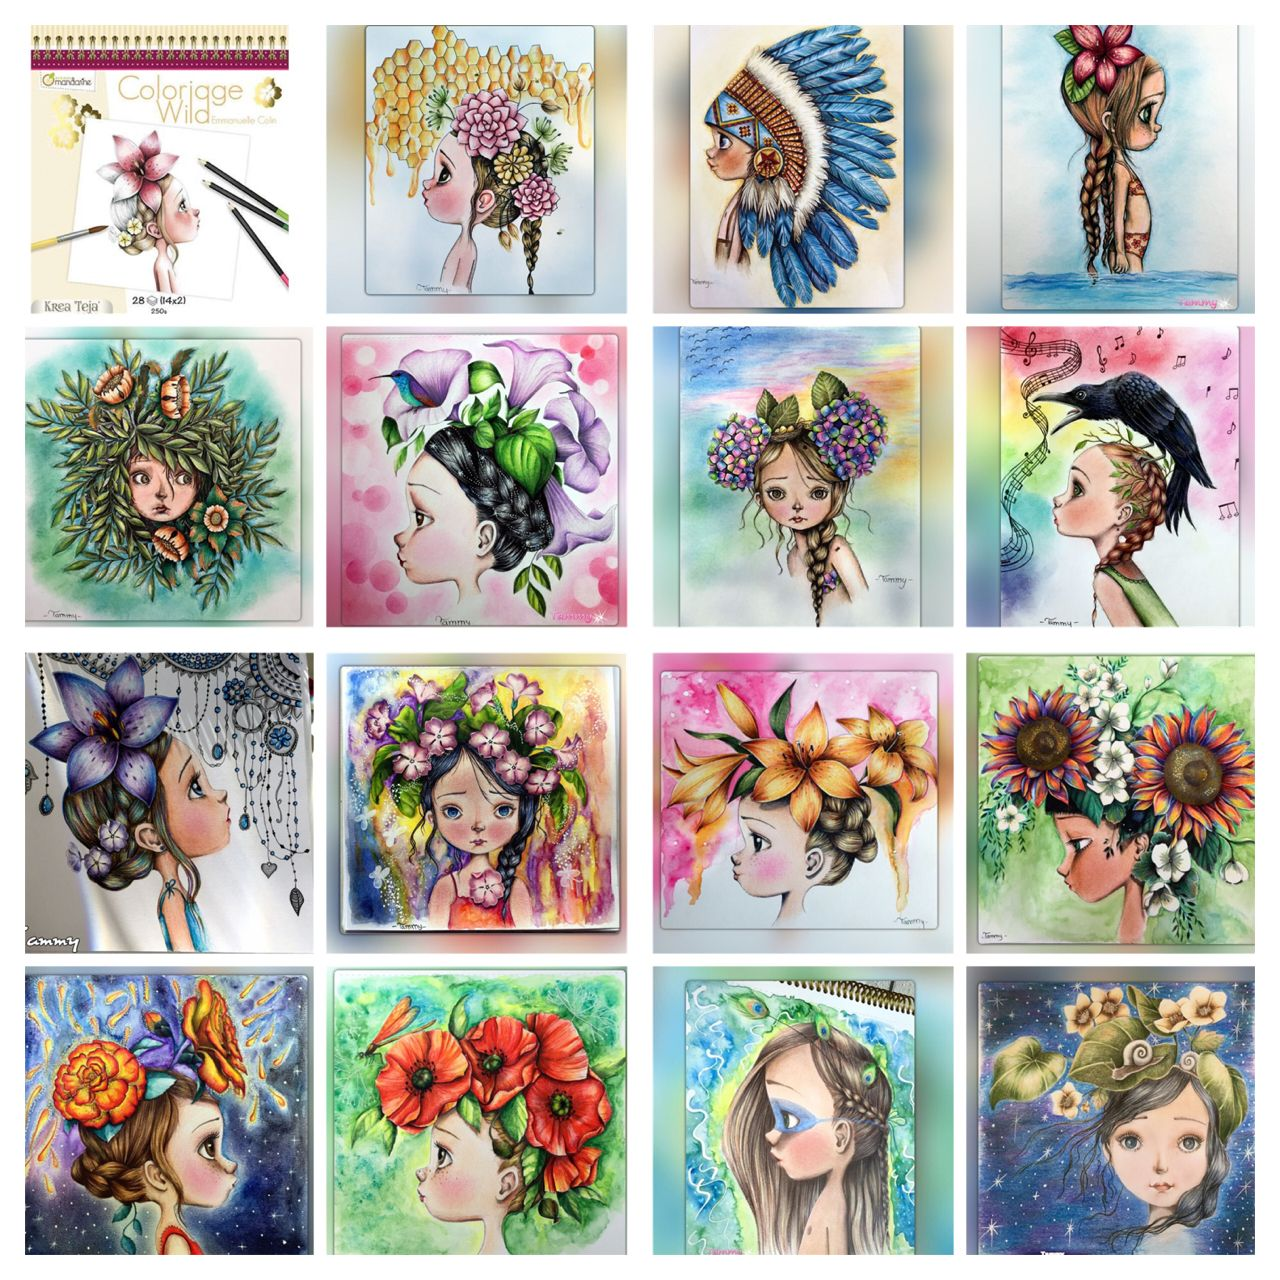 My Collection Of Coloriage Wild By Emmanuelle Colin